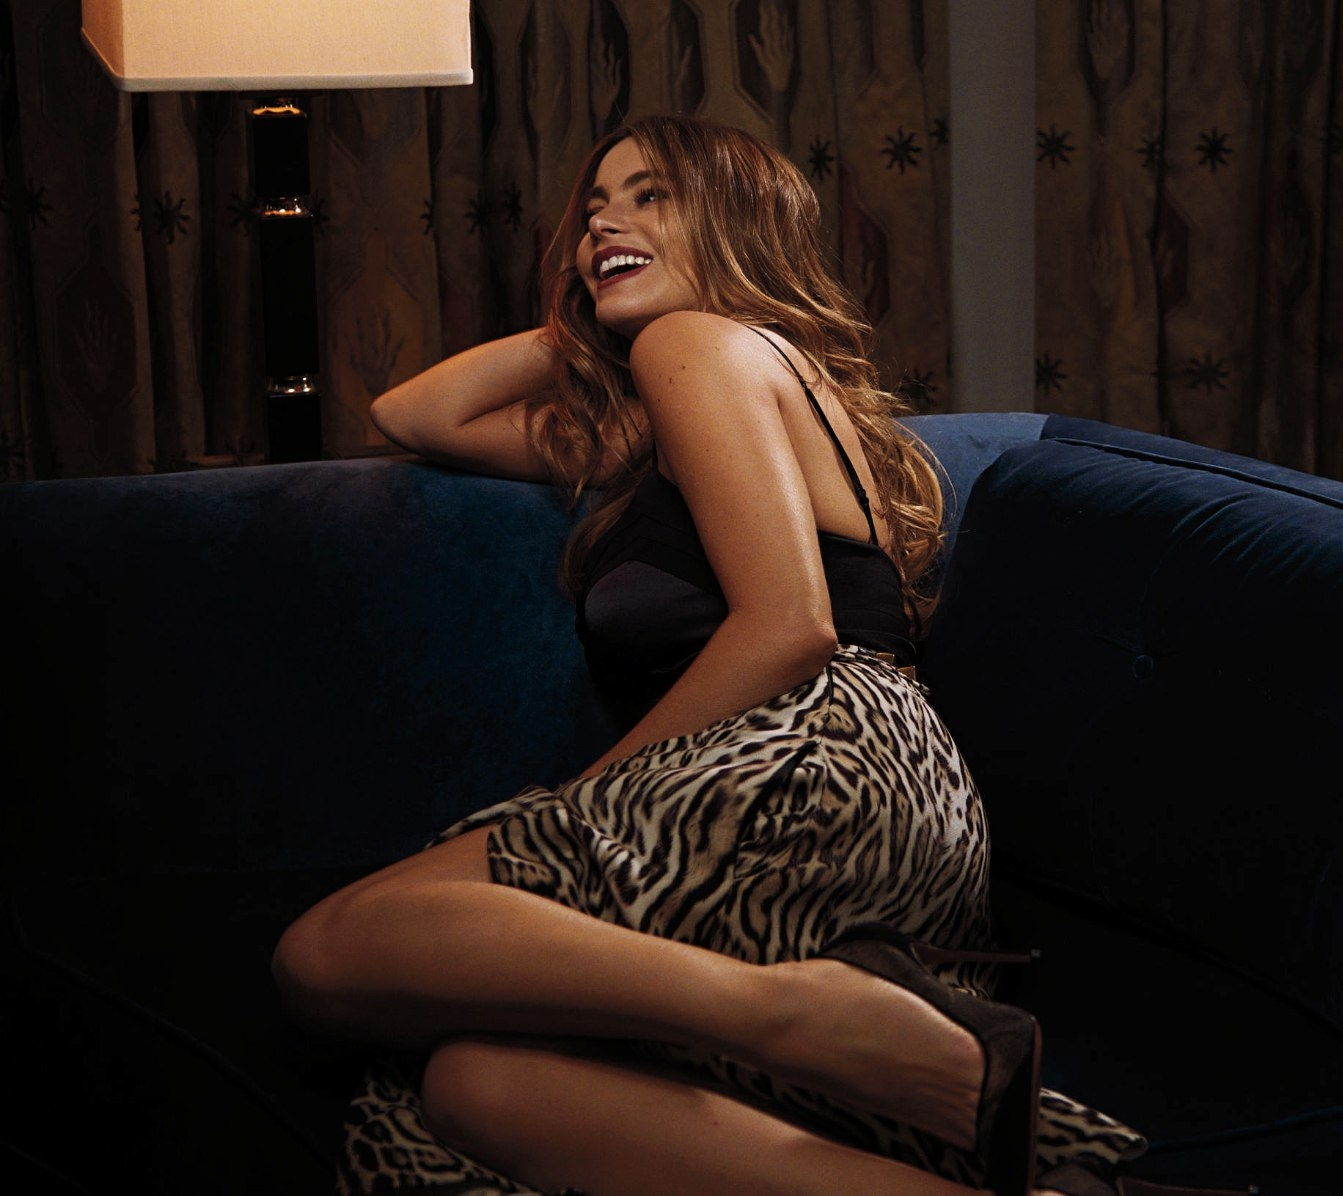 Sofia Vergara on Sofa